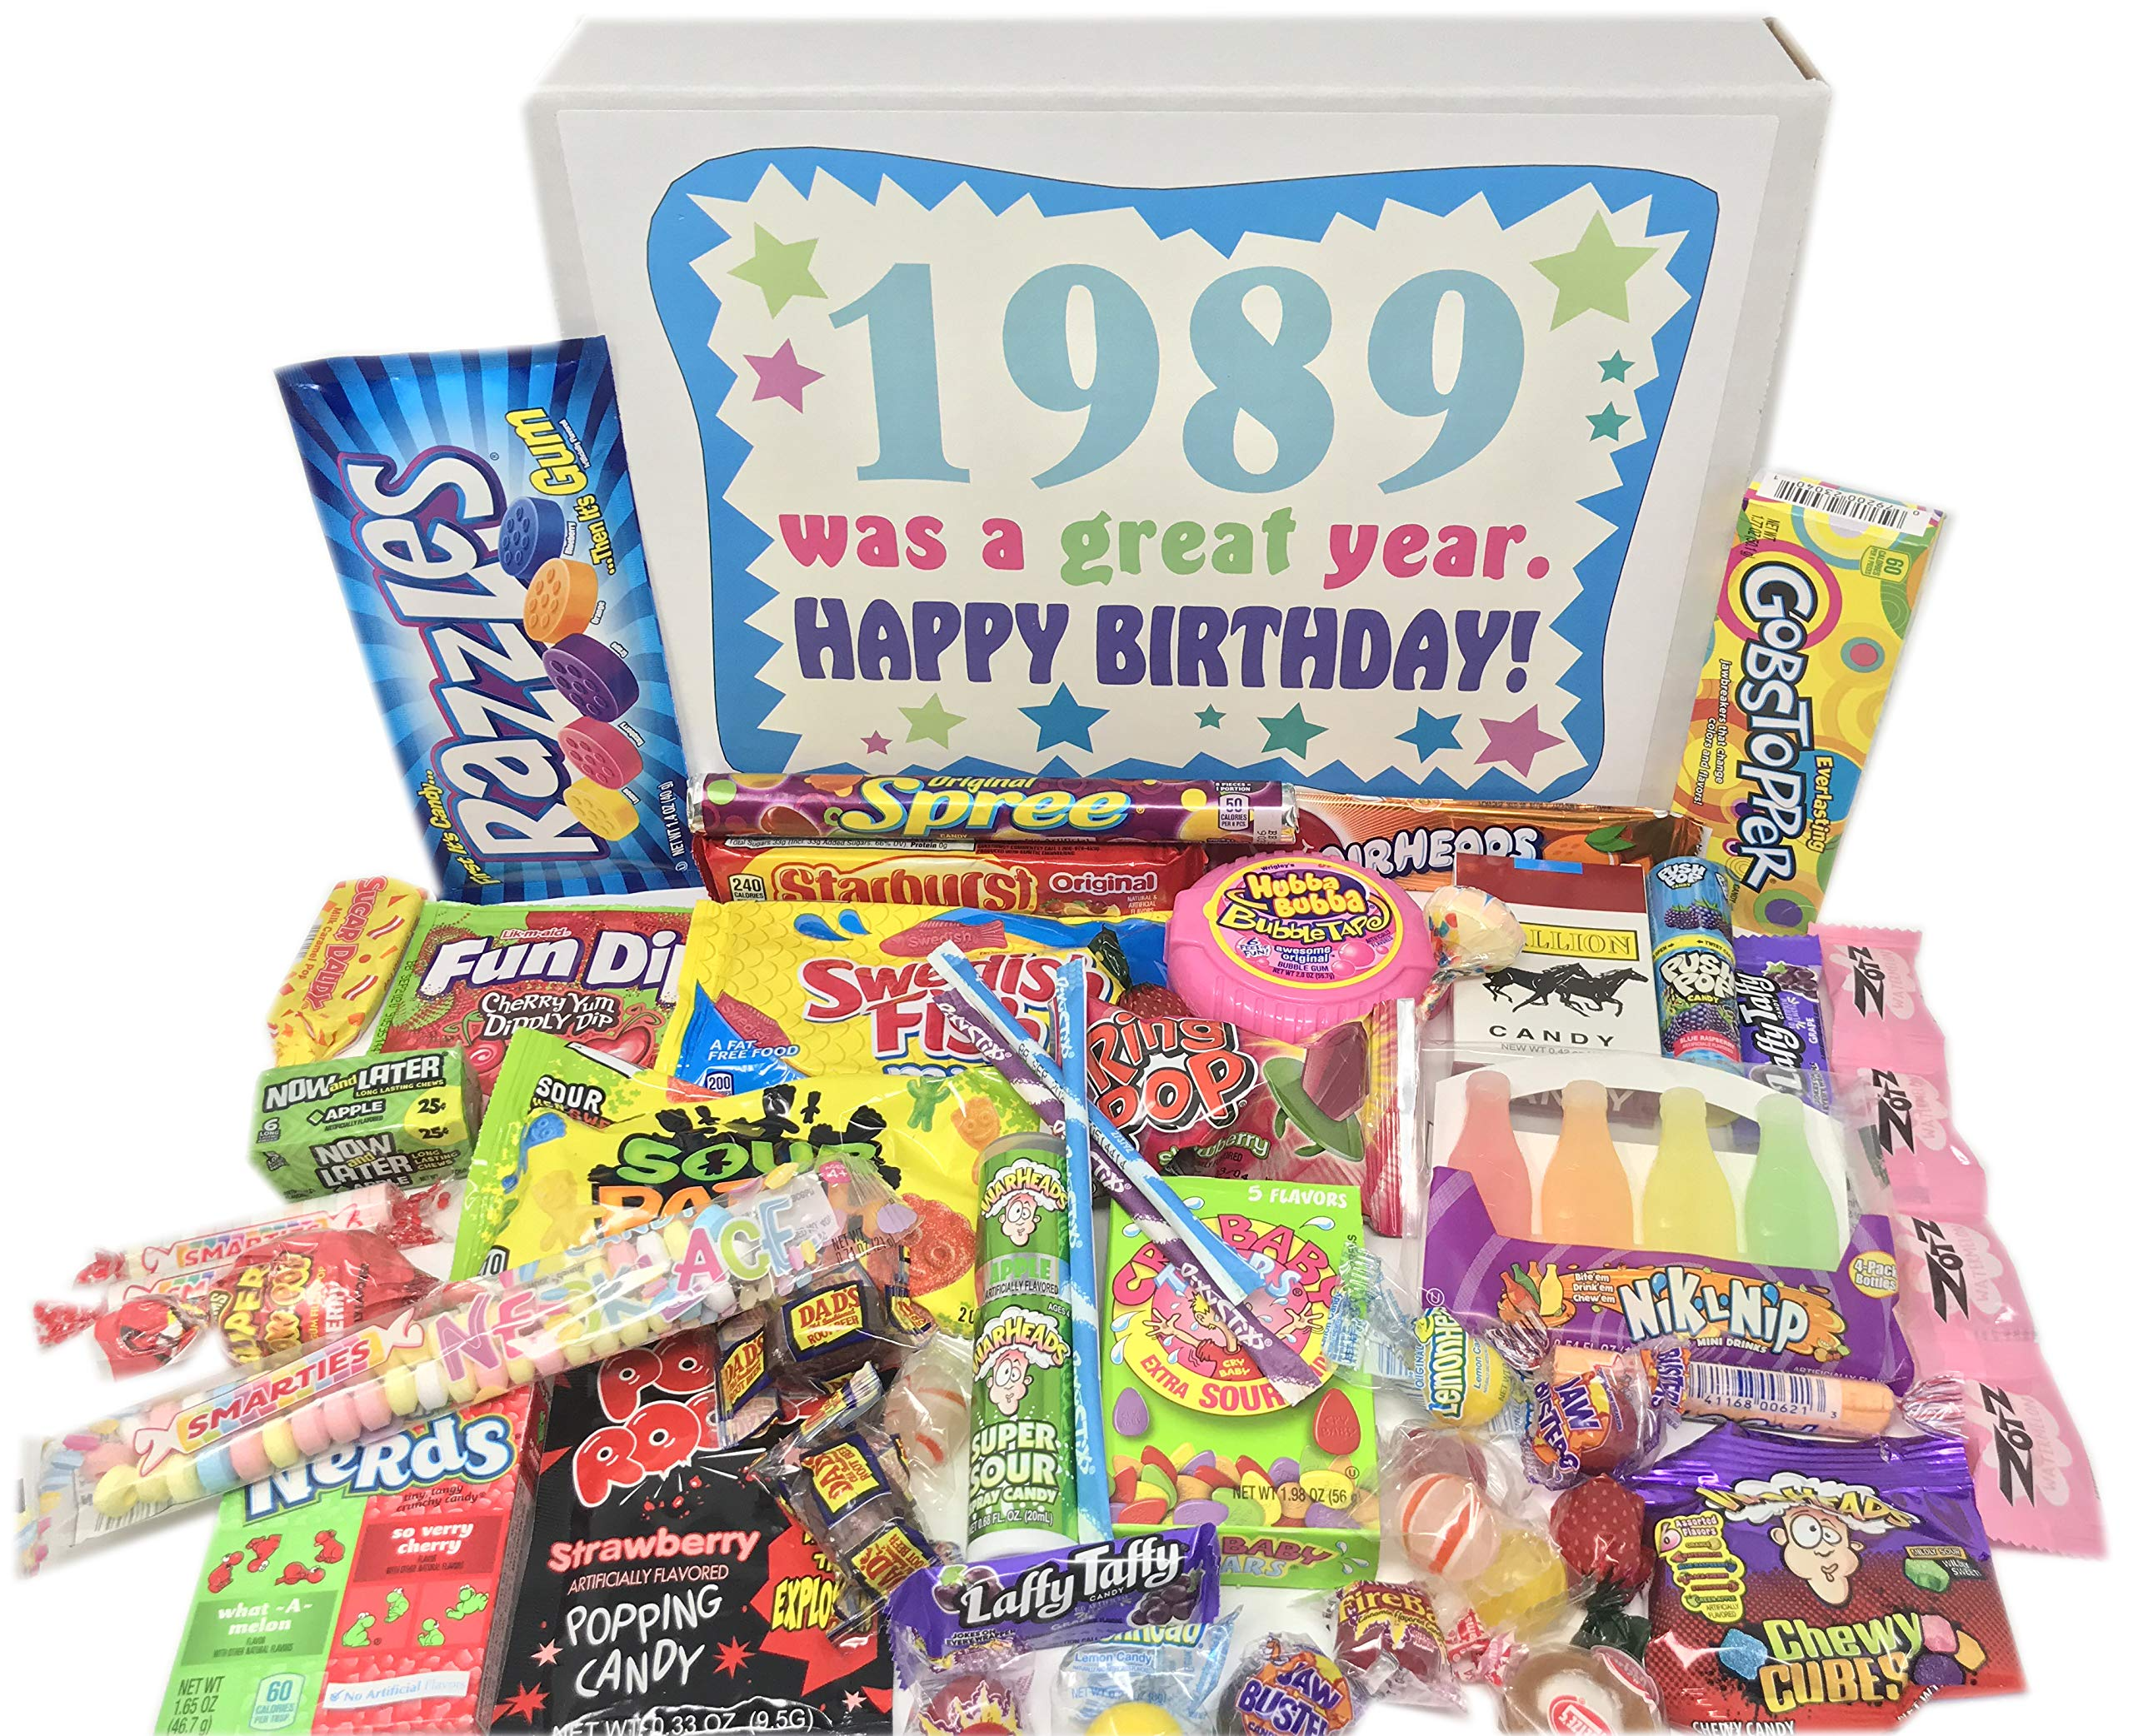 Woodstock Candy ~ 1989 BIRTHDAY GIFTS -30th Birthday Gift Ideas - Retro Nostalgic Candy Assortment from Childhood - 30th Birthday Gifts for Men and Women 1989 Candy Box by Woodstock Candy